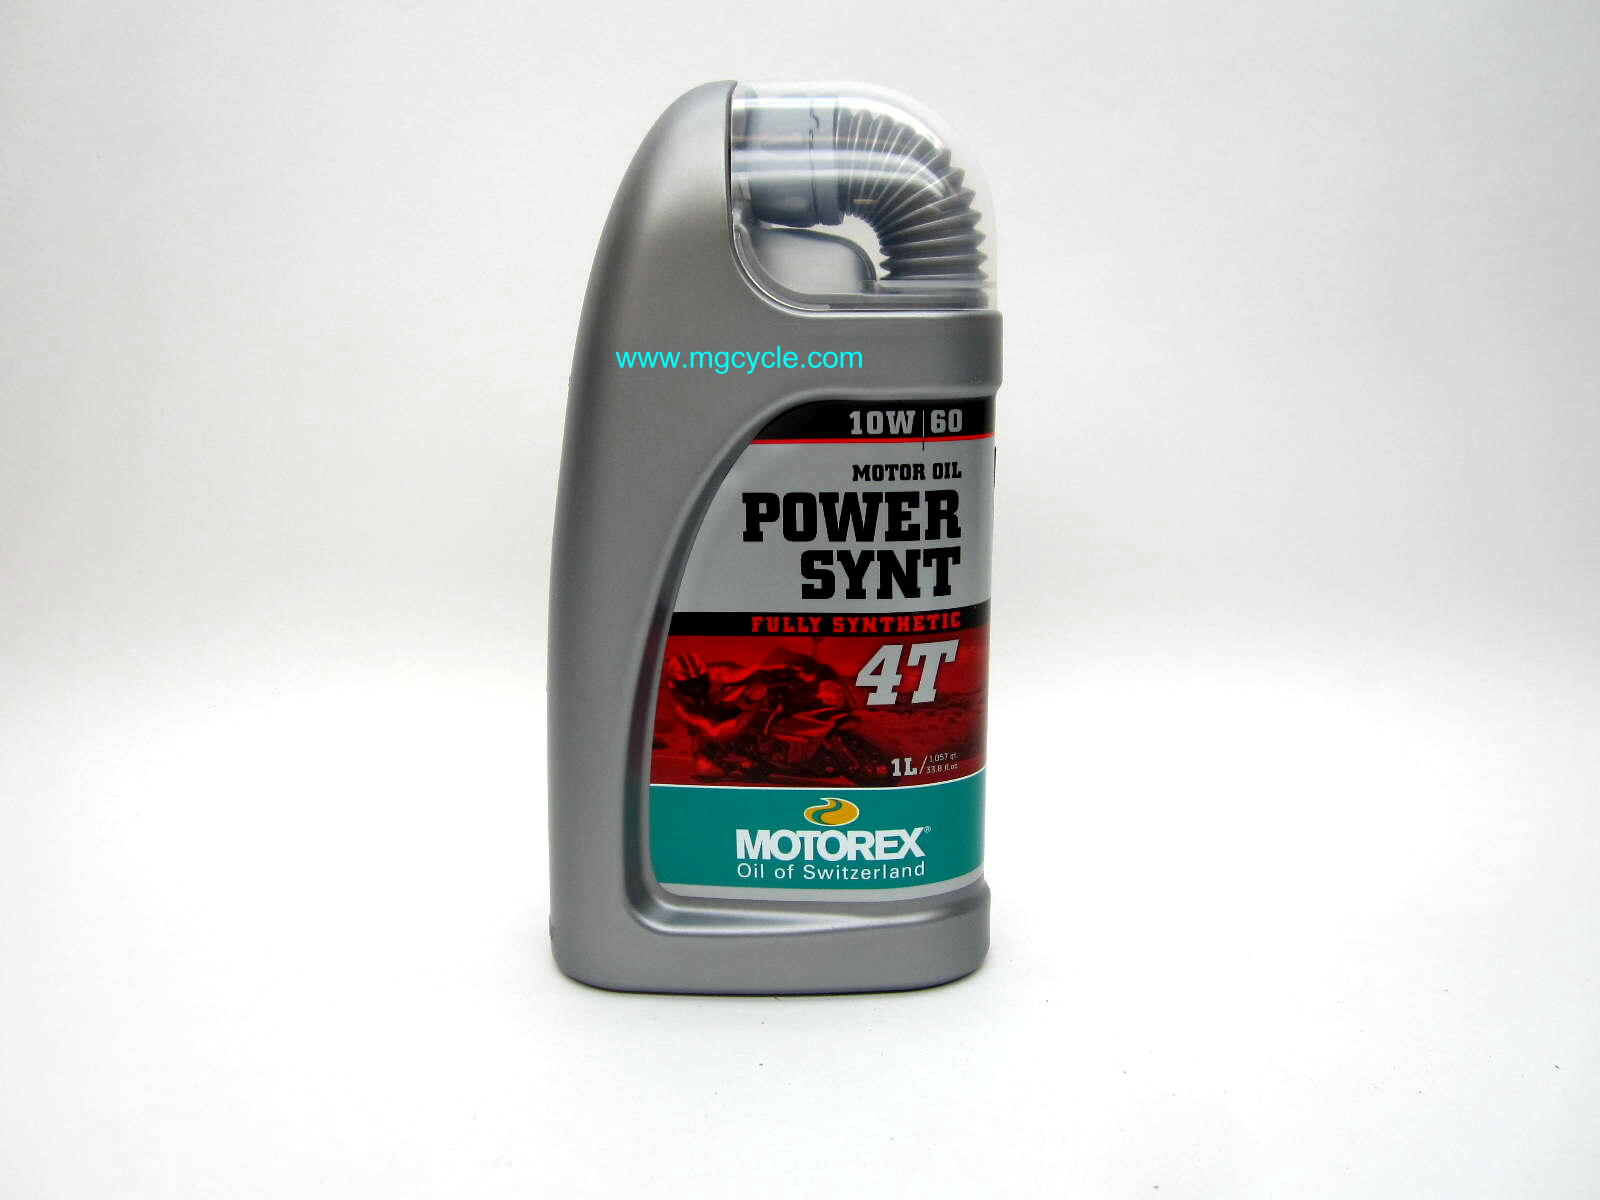 Motorex POWER SYNT 4T 10W60 synthetic motor oil, 1 liter